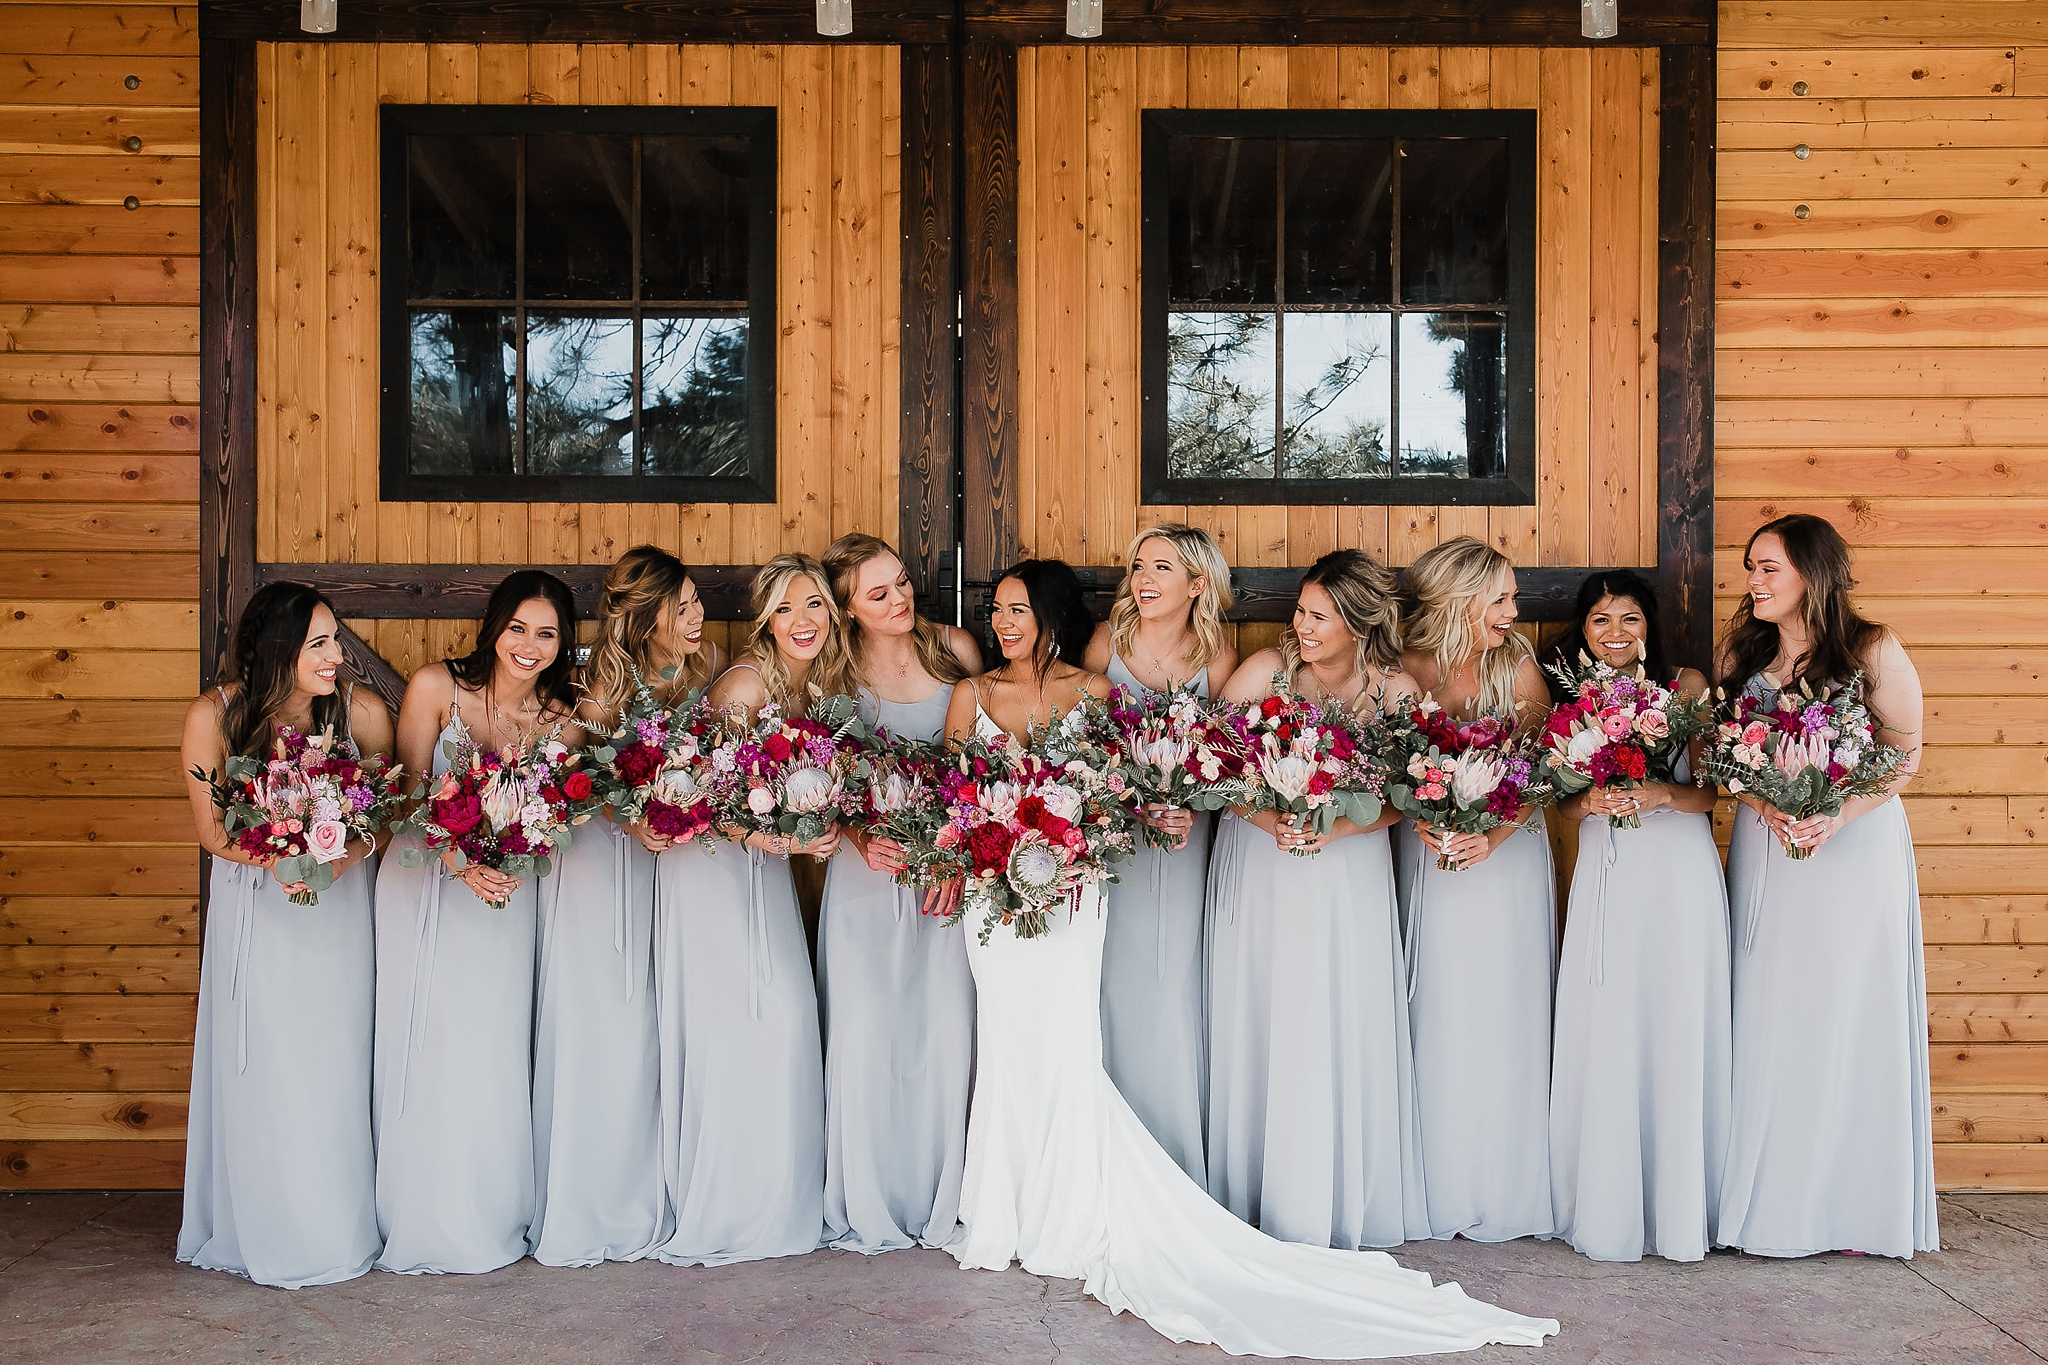 Alicia+lucia+photography+-+albuquerque+wedding+photographer+-+santa+fe+wedding+photography+-+new+mexico+wedding+photographer+-+new+mexico+wedding+-+new+mexico+wedding+-+colorado+wedding+-+bridesmaids+-+bridesmaid+style_0001.jpg